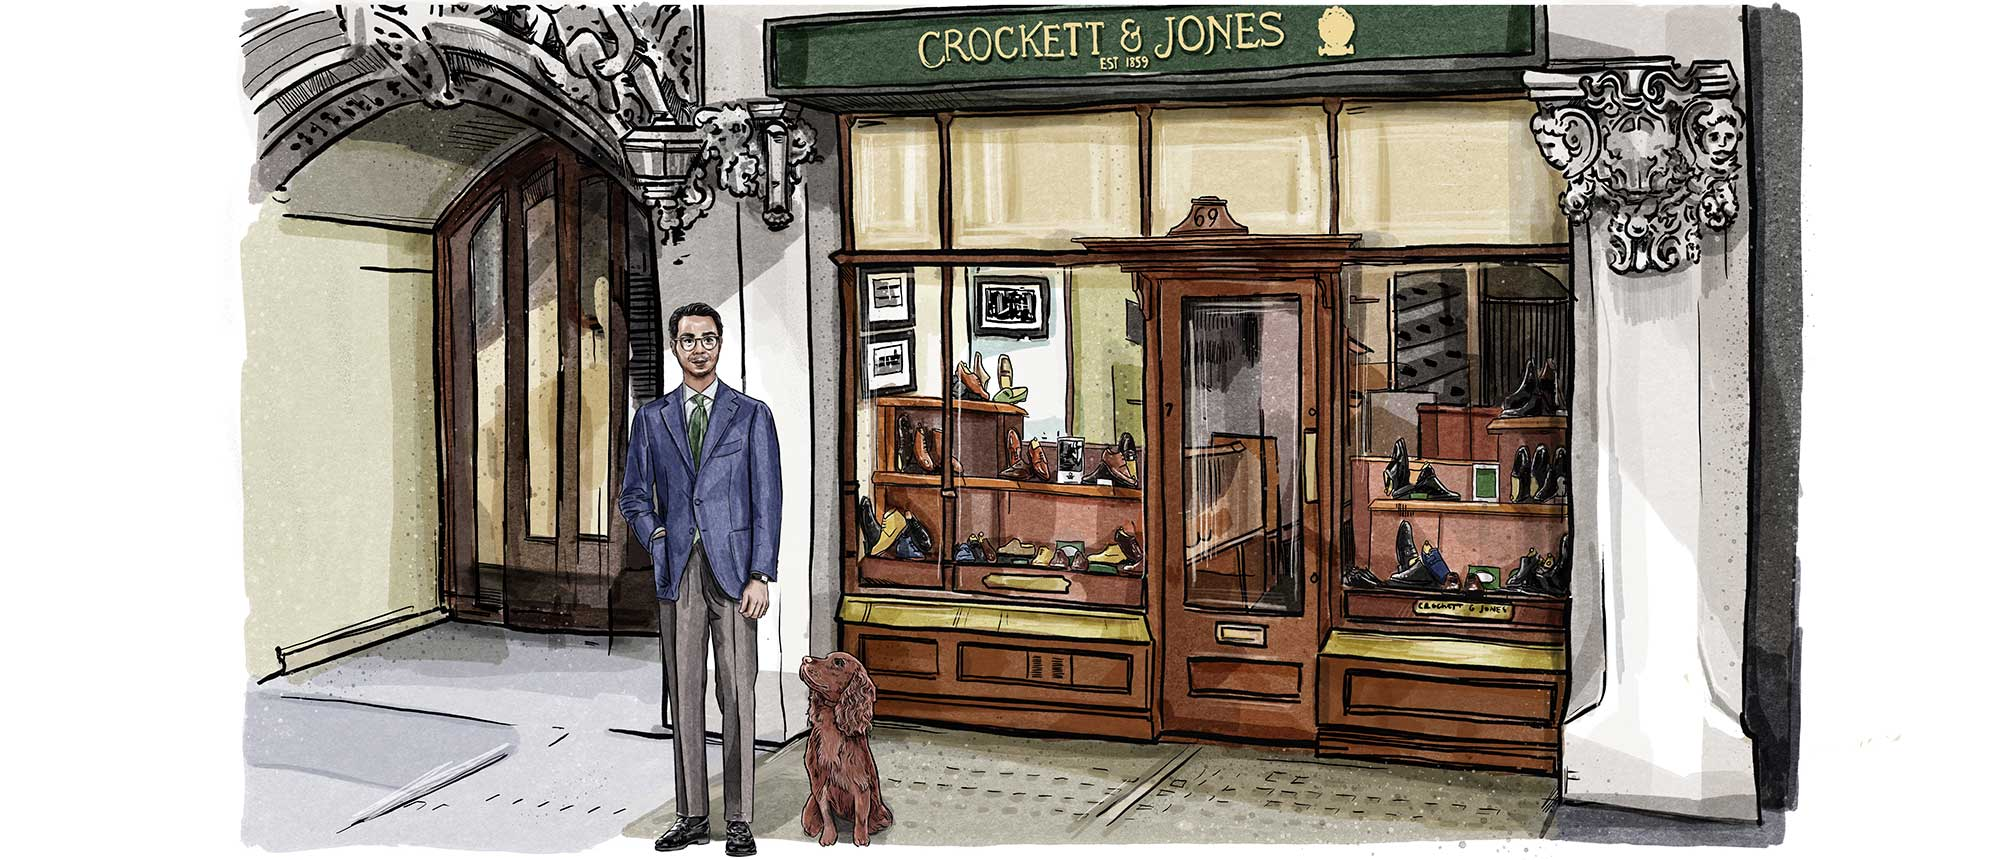 Crockett & Jones - A Day in the life of a C&J Retail Manager...